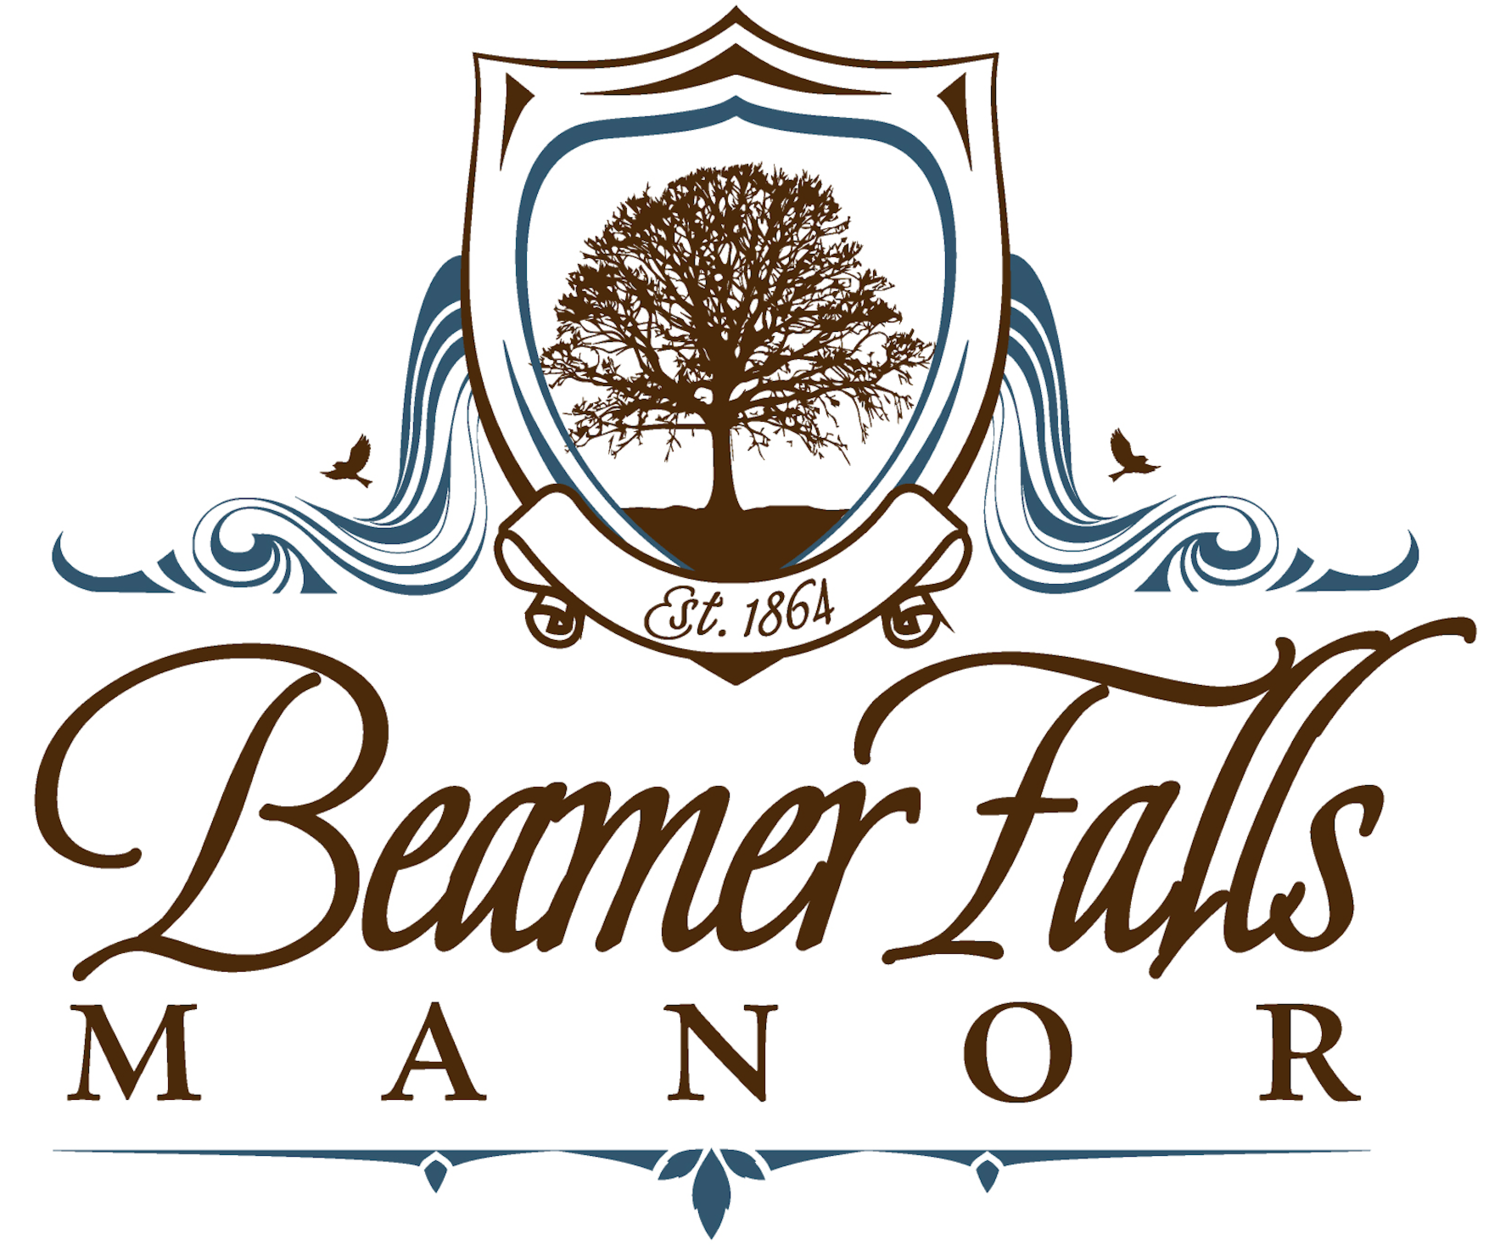 Beamer Falls Manor